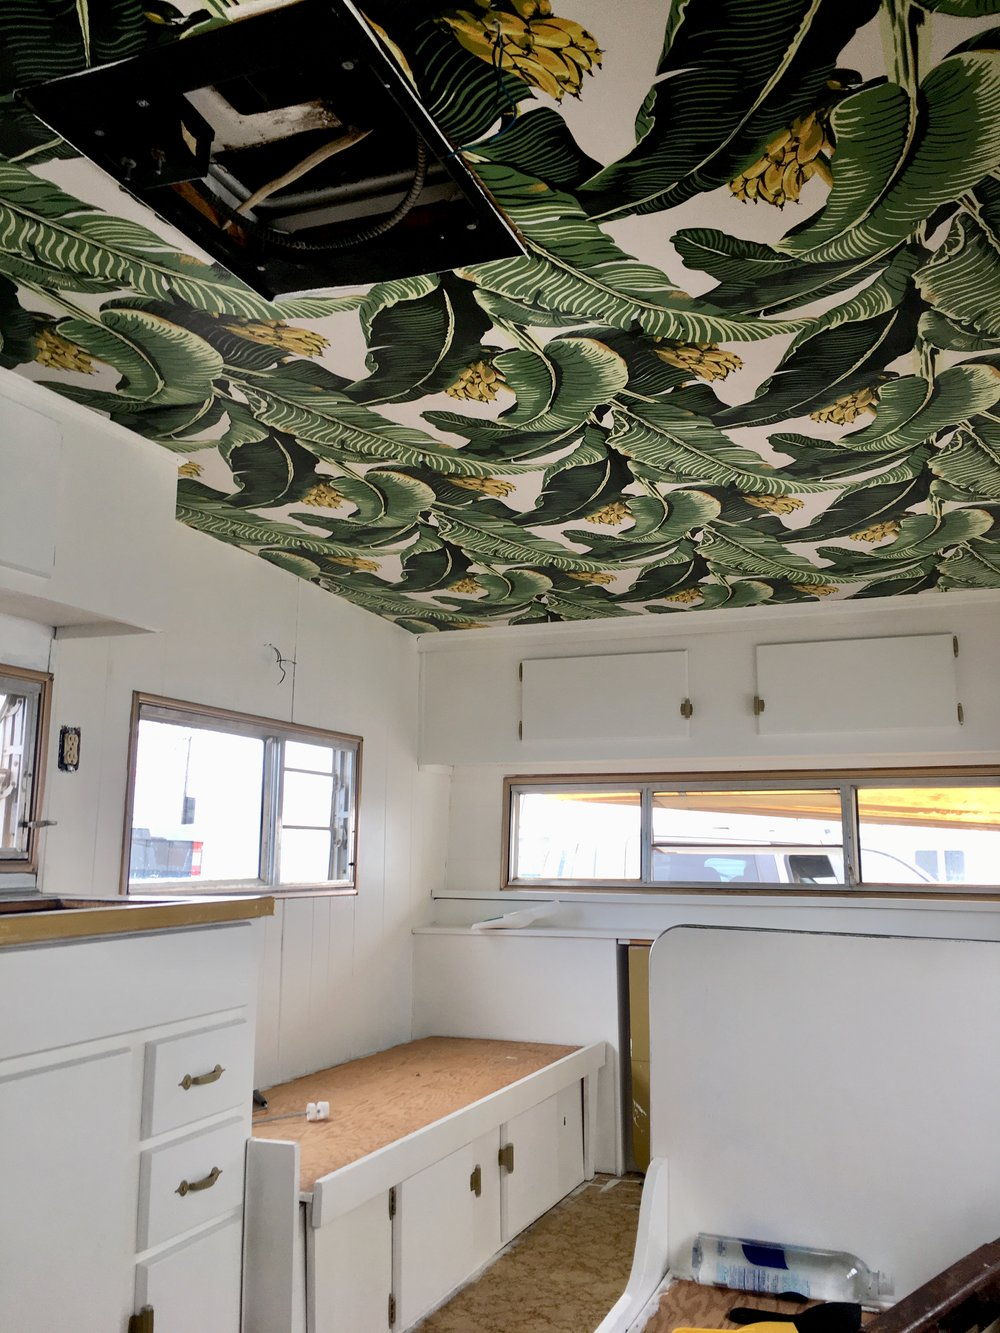 Banana wallpapered ceiling